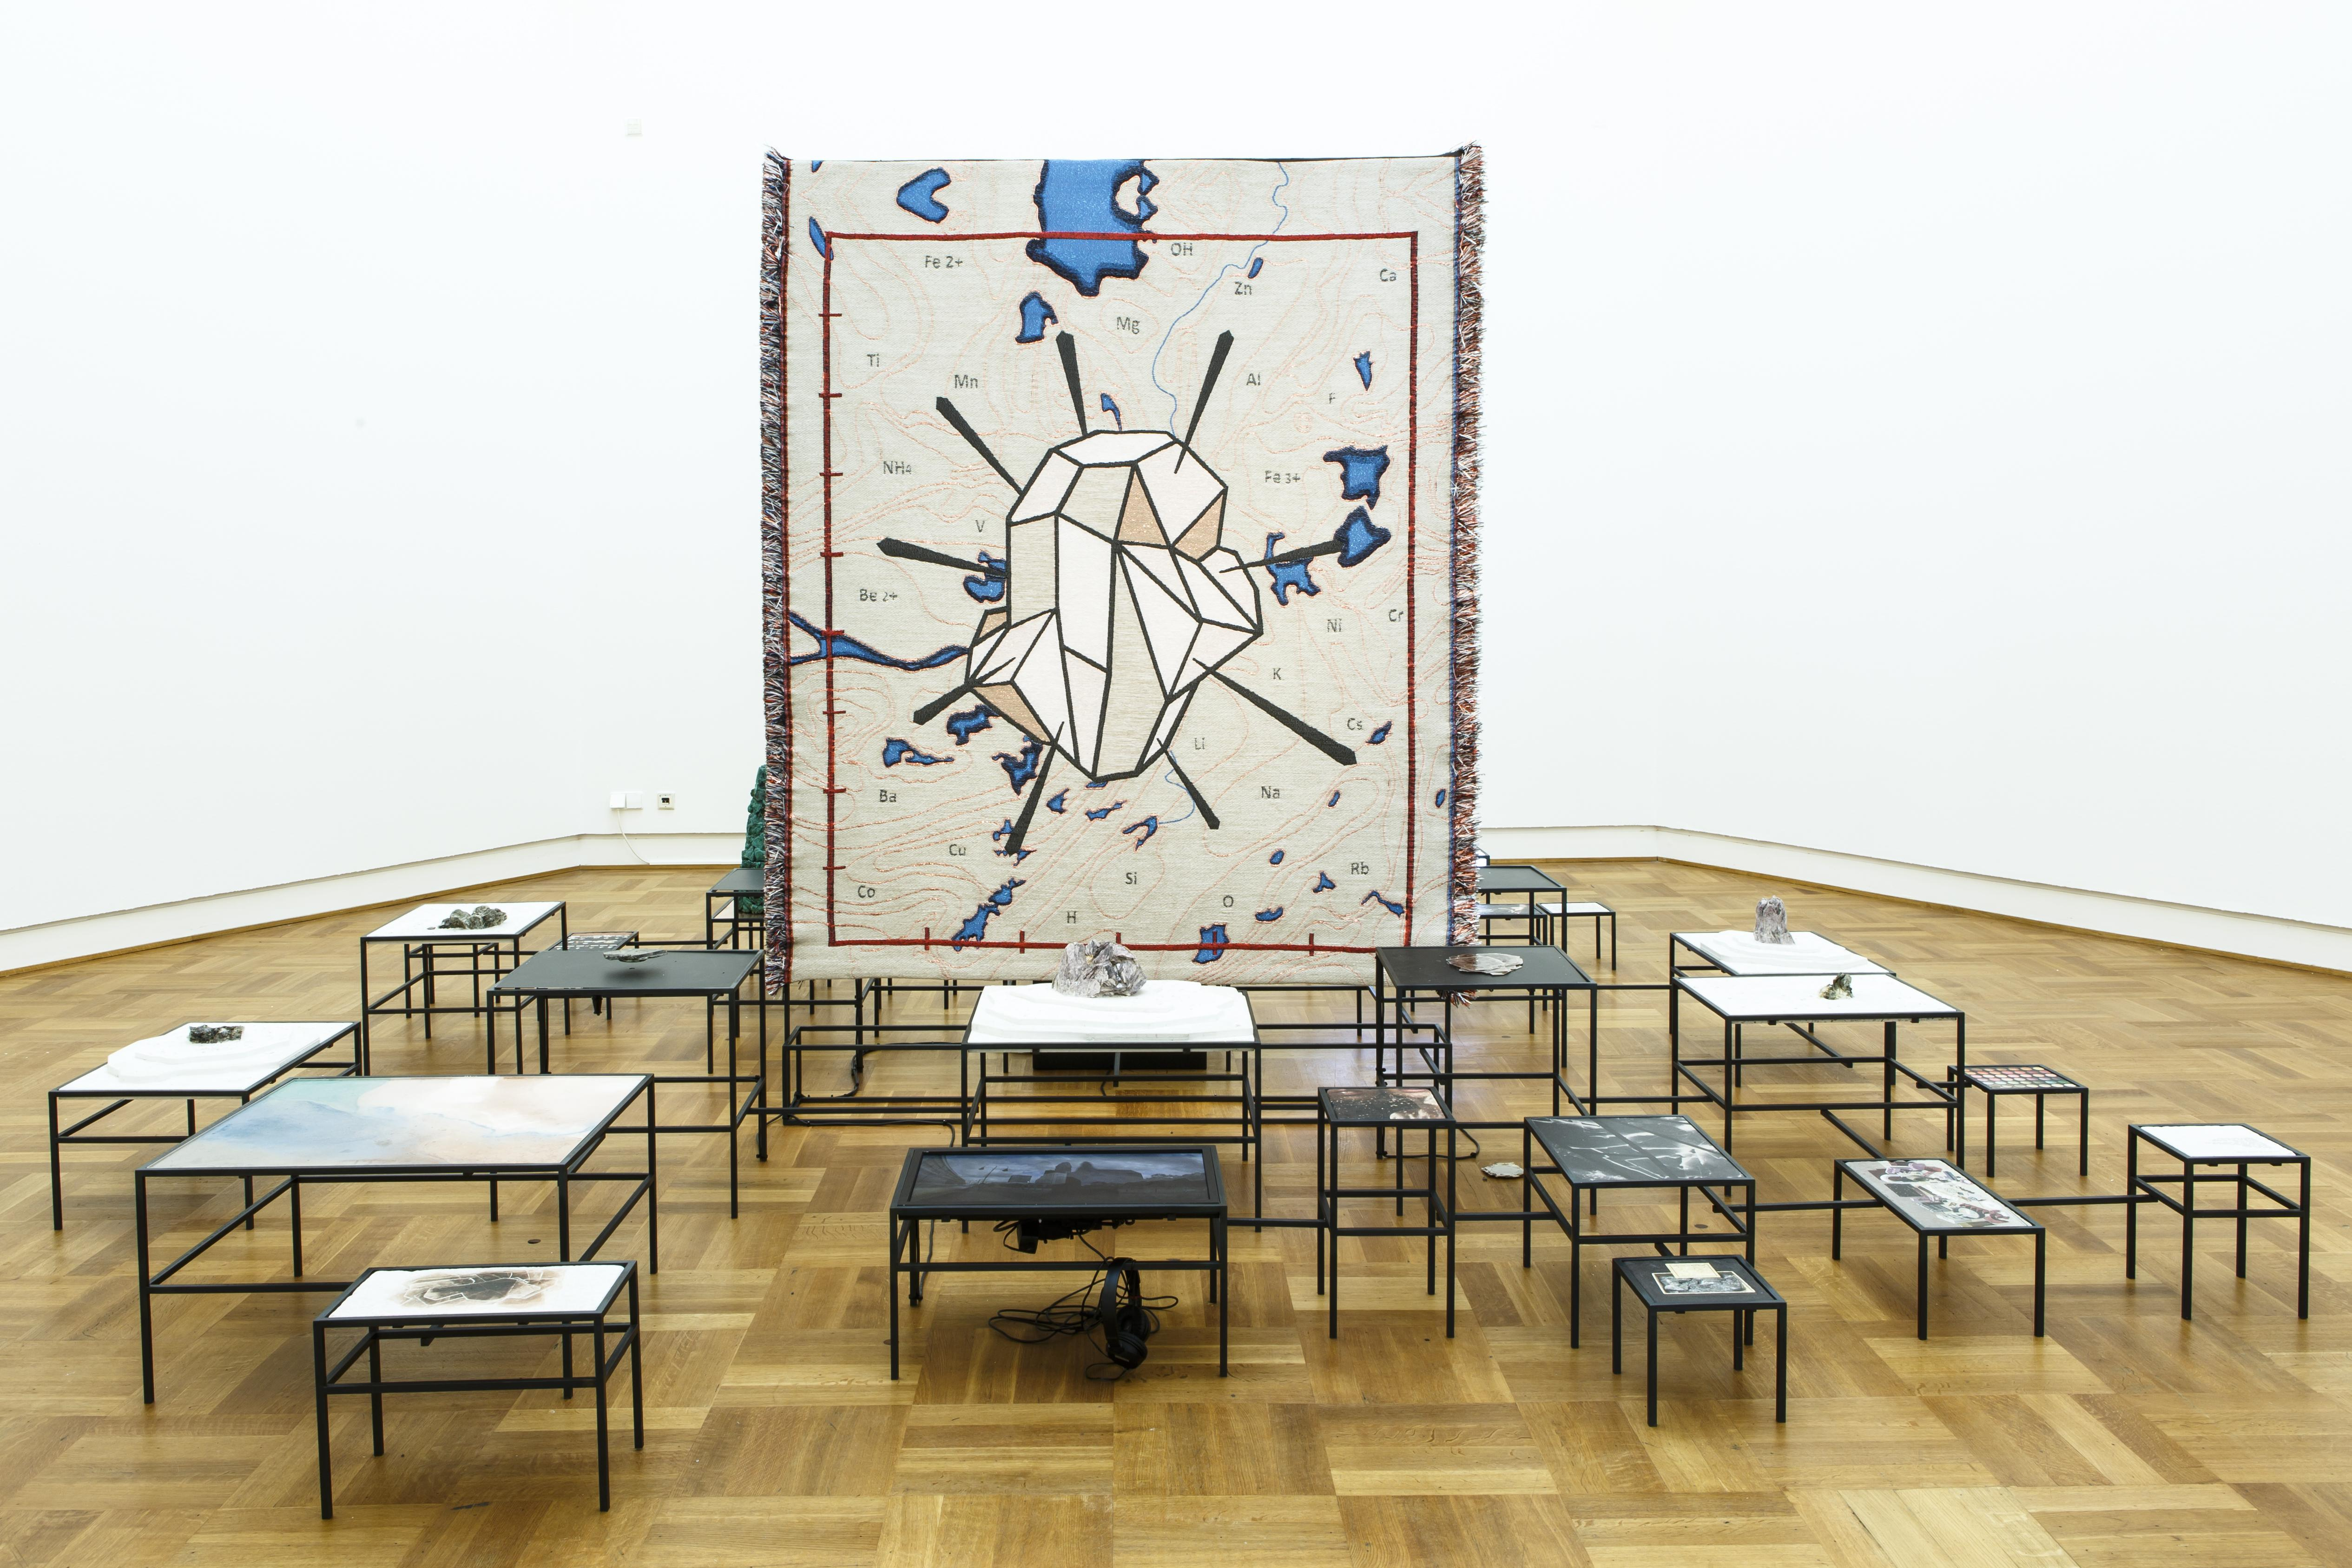 A large tapestry of a gem pierced by needles stands vertically in an art exhibition. It is surrounded by over a dozen metal tables of different sizes and heights.